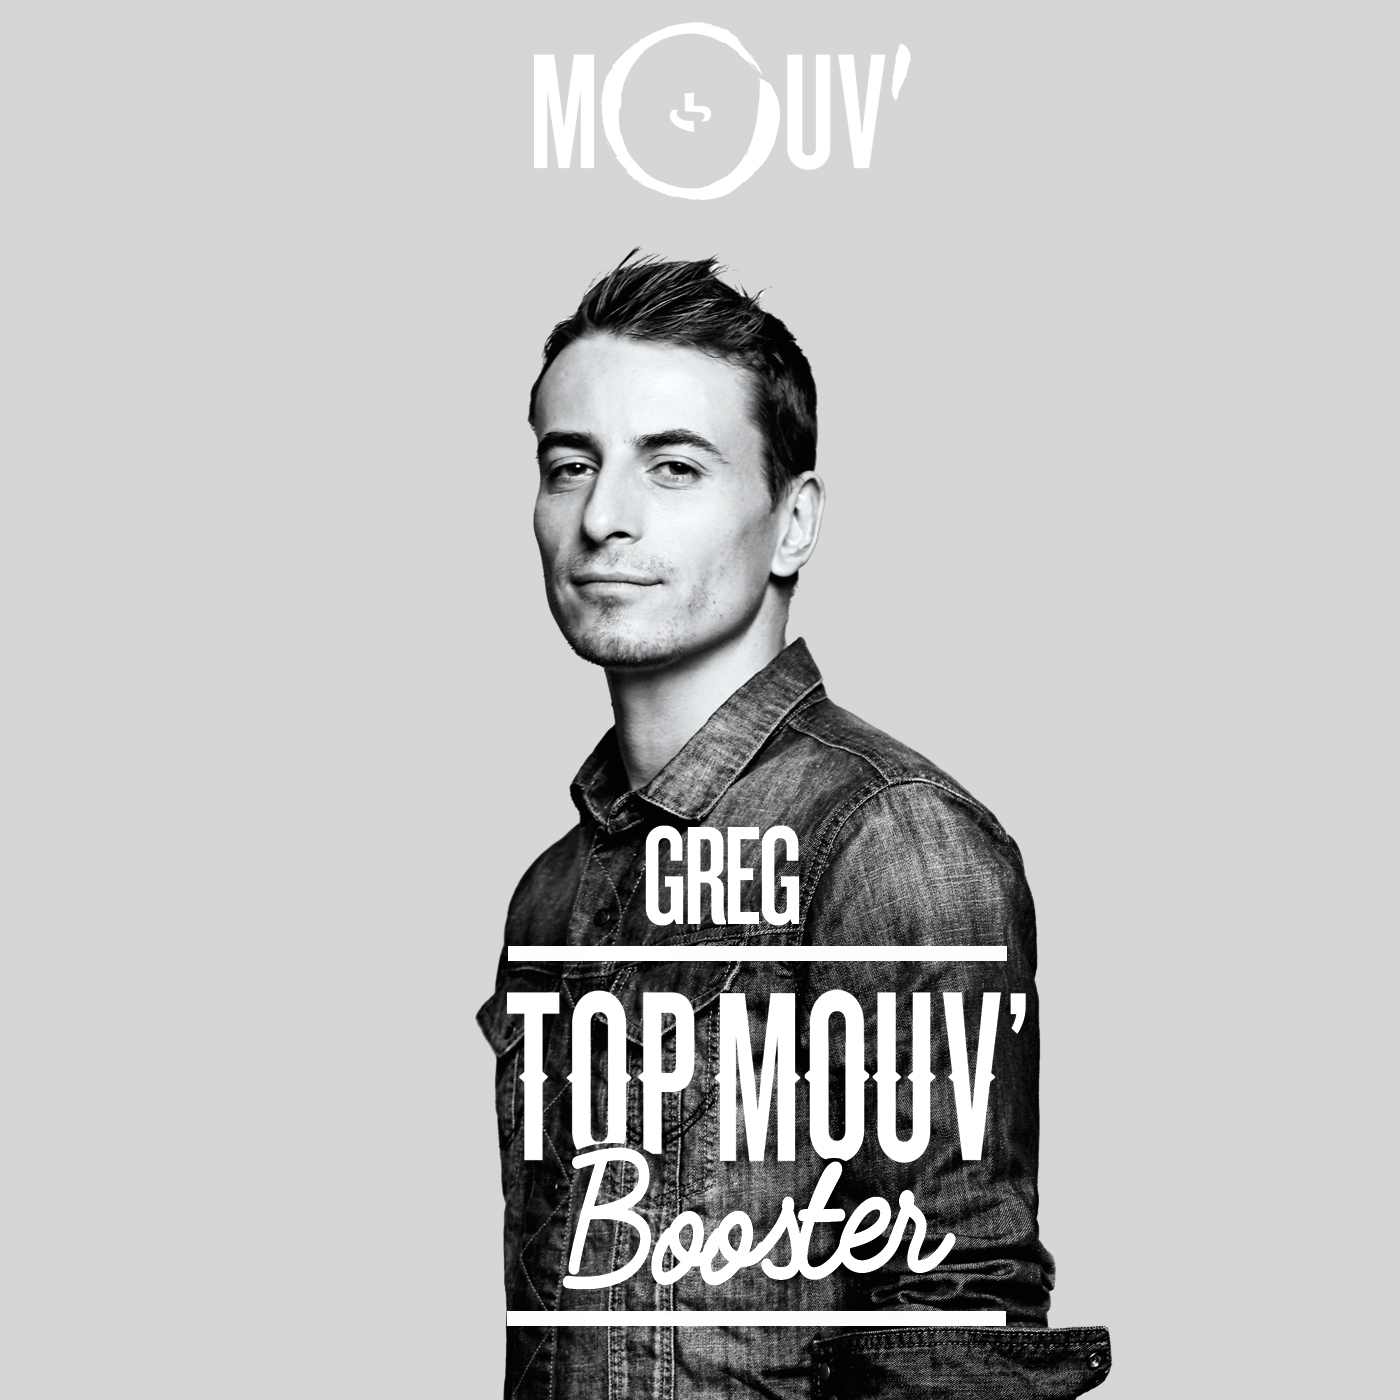 Top Mouv' Booster